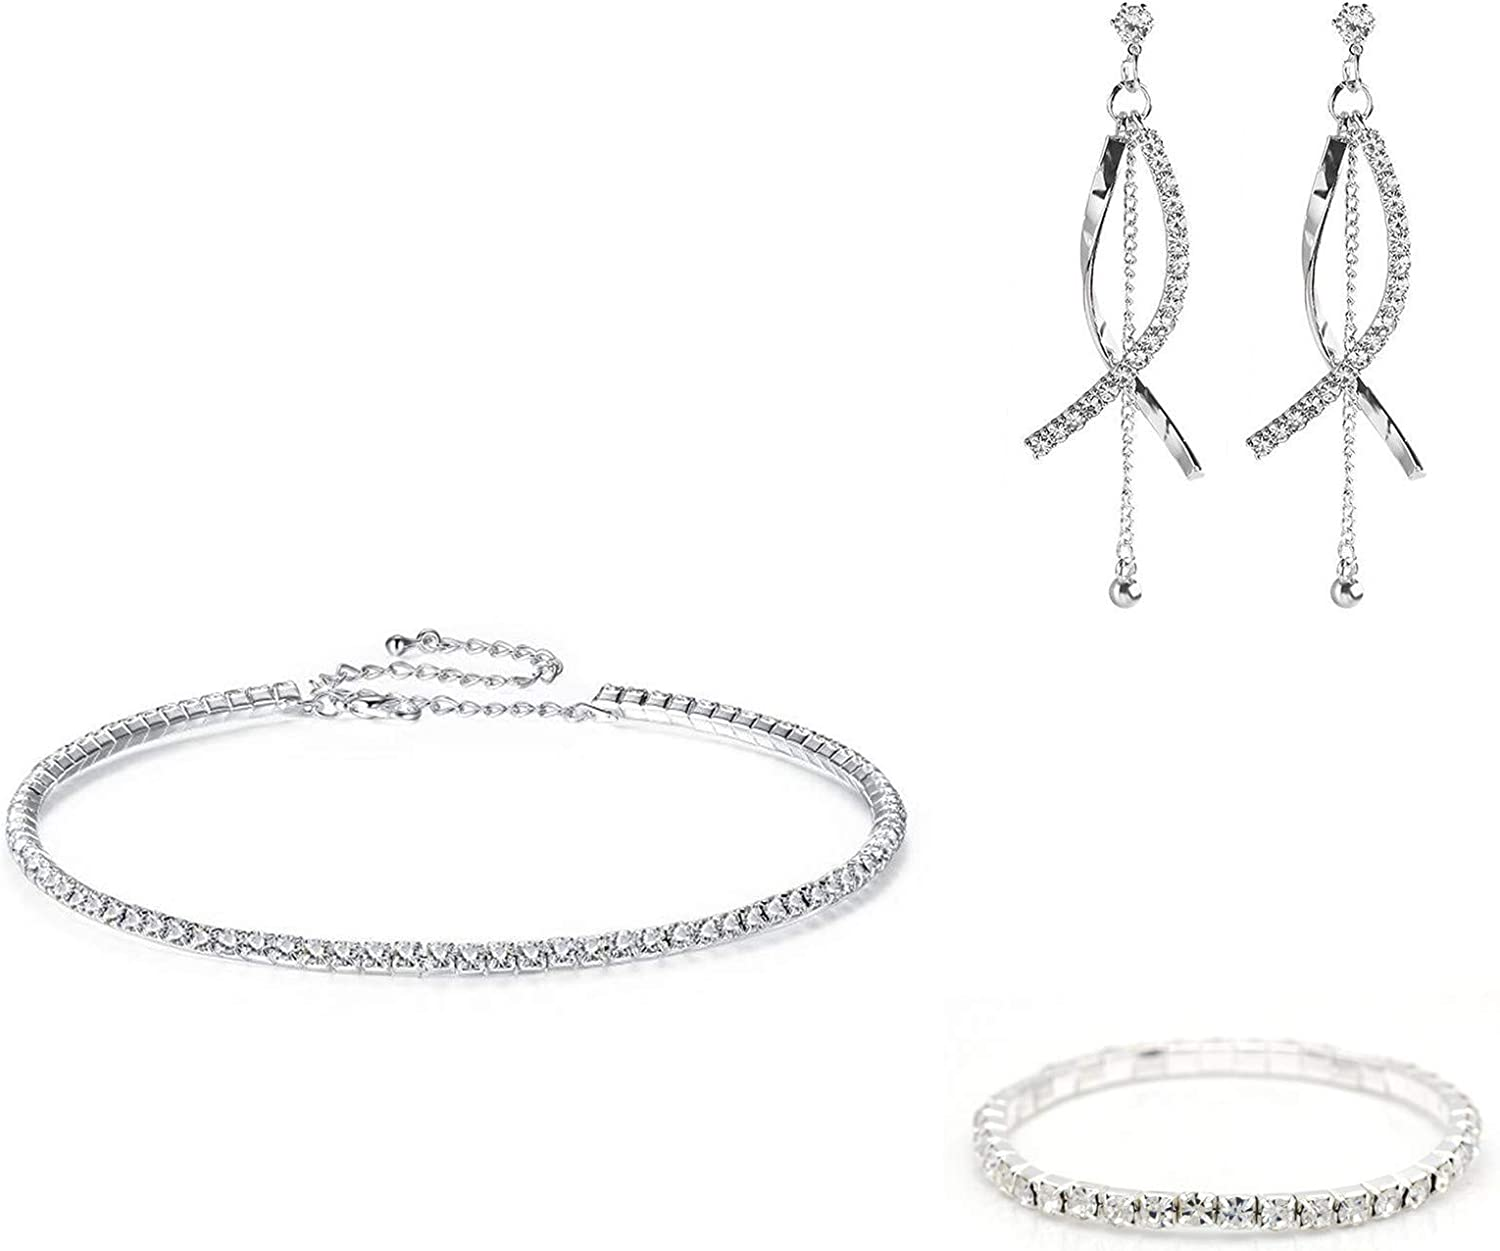 3Pcs/Set Crystal Choker Necklace Sparkly Bracelet Bling Dangle Earring Jewelry Sets Clear Rhinestone Collar Necklace Long Drop Dangle Tassel Fringe Earrings Bridesmaid Jewelry Sets for Wedding Party